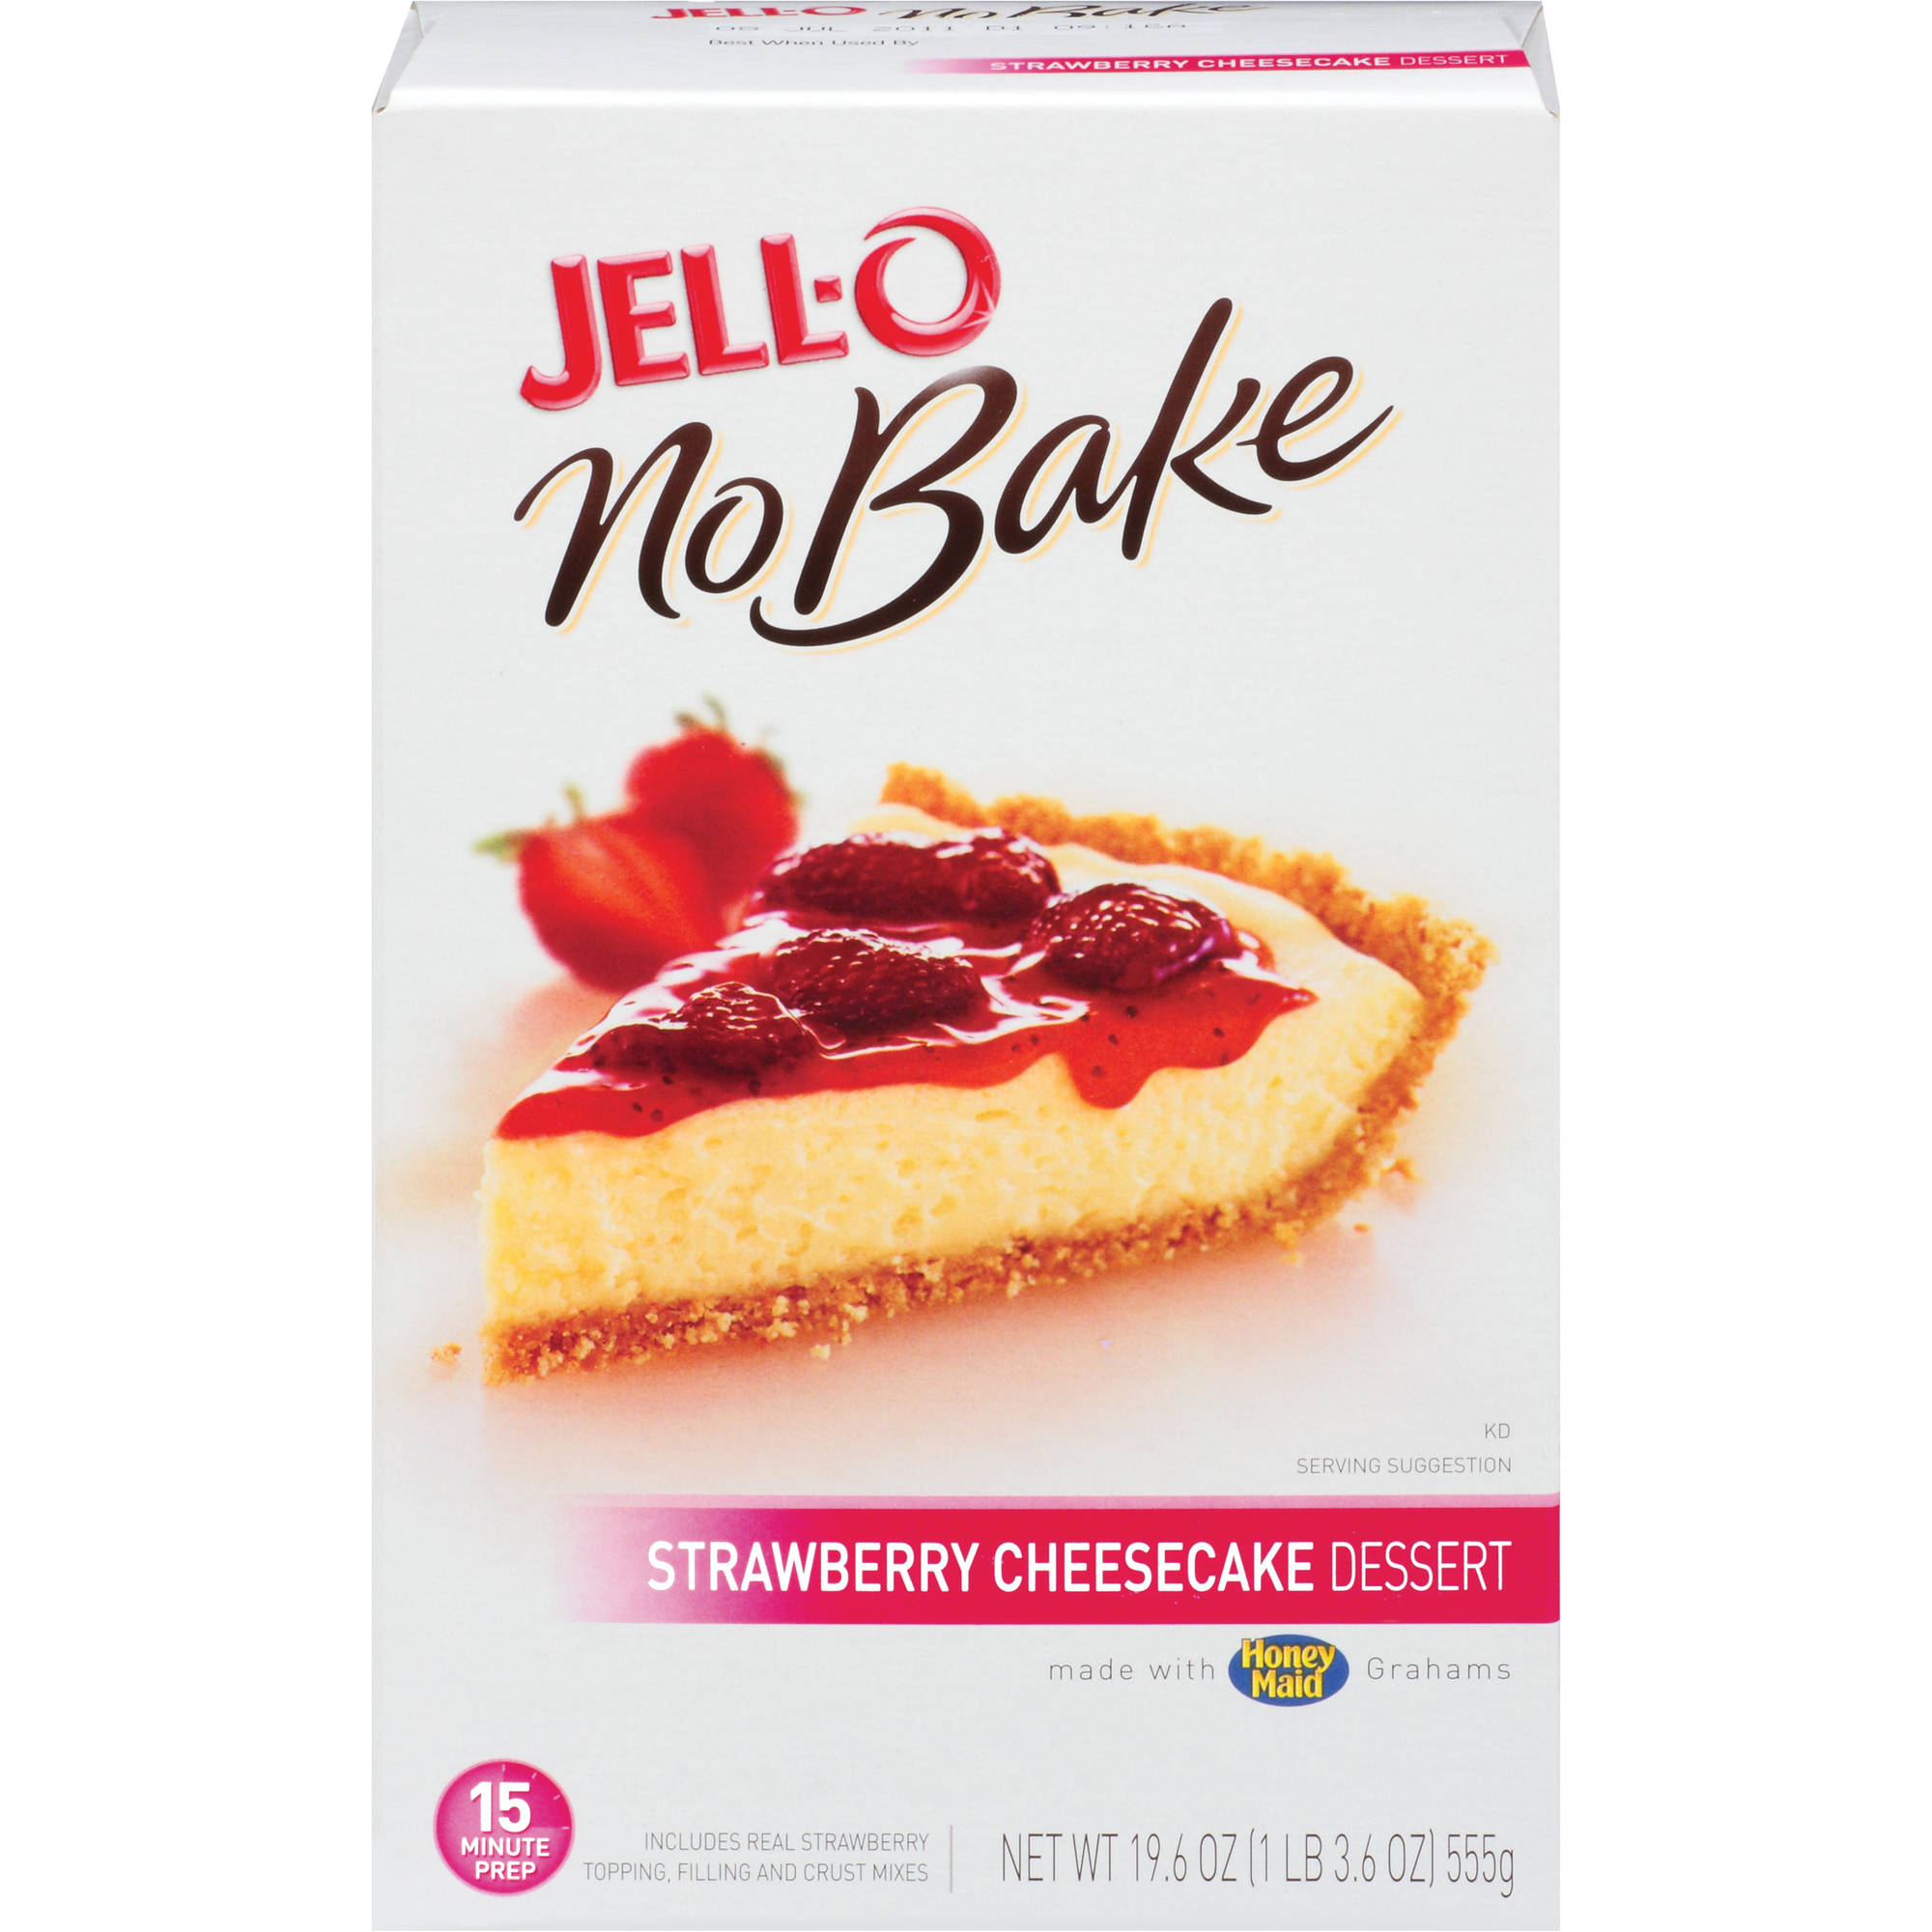 Jell-O No Bake Strawberry Cheesecake Dessert Mix, 19.6 oz